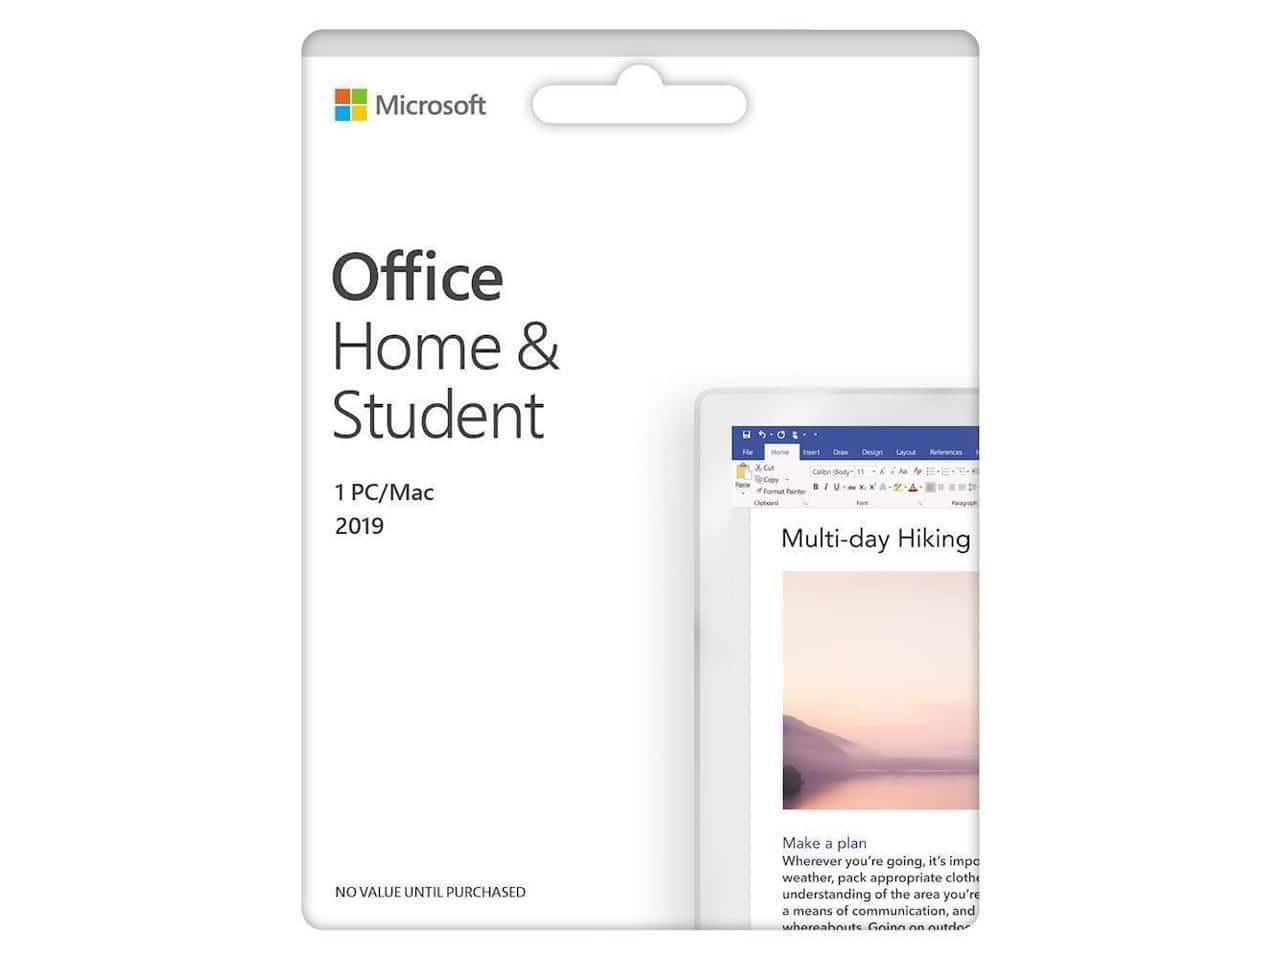 Microsoft Office Home & Student 2019 (1 Device) (Product Key Card) - Mac|Windows for $69.99